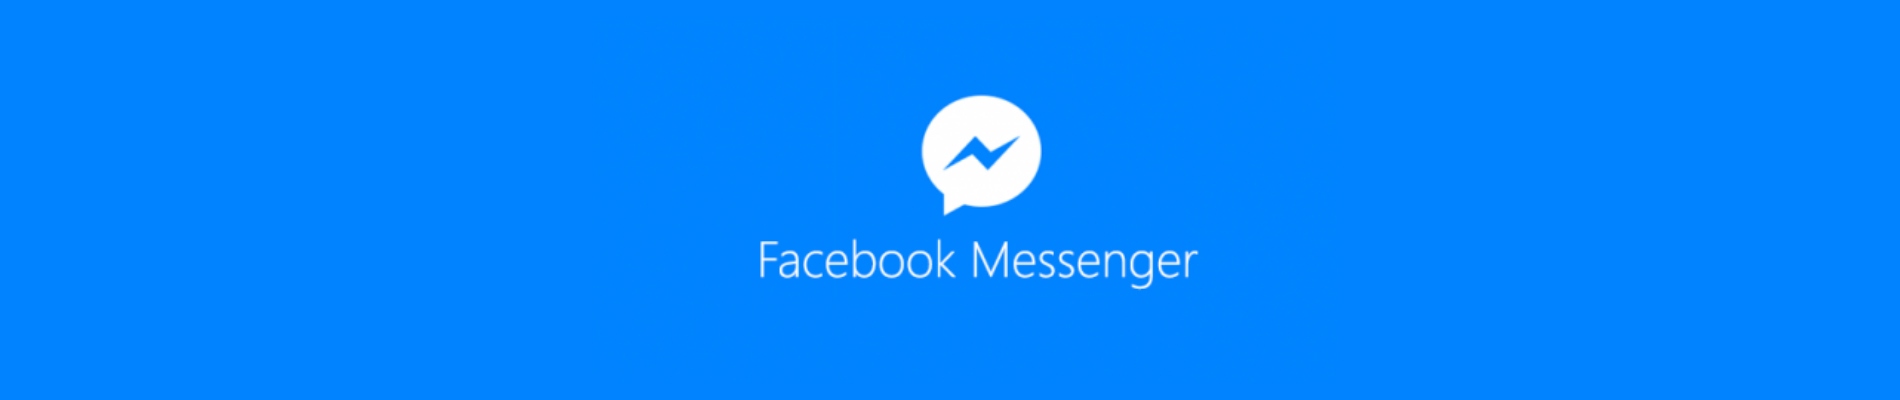 facebook marketing messenger case study